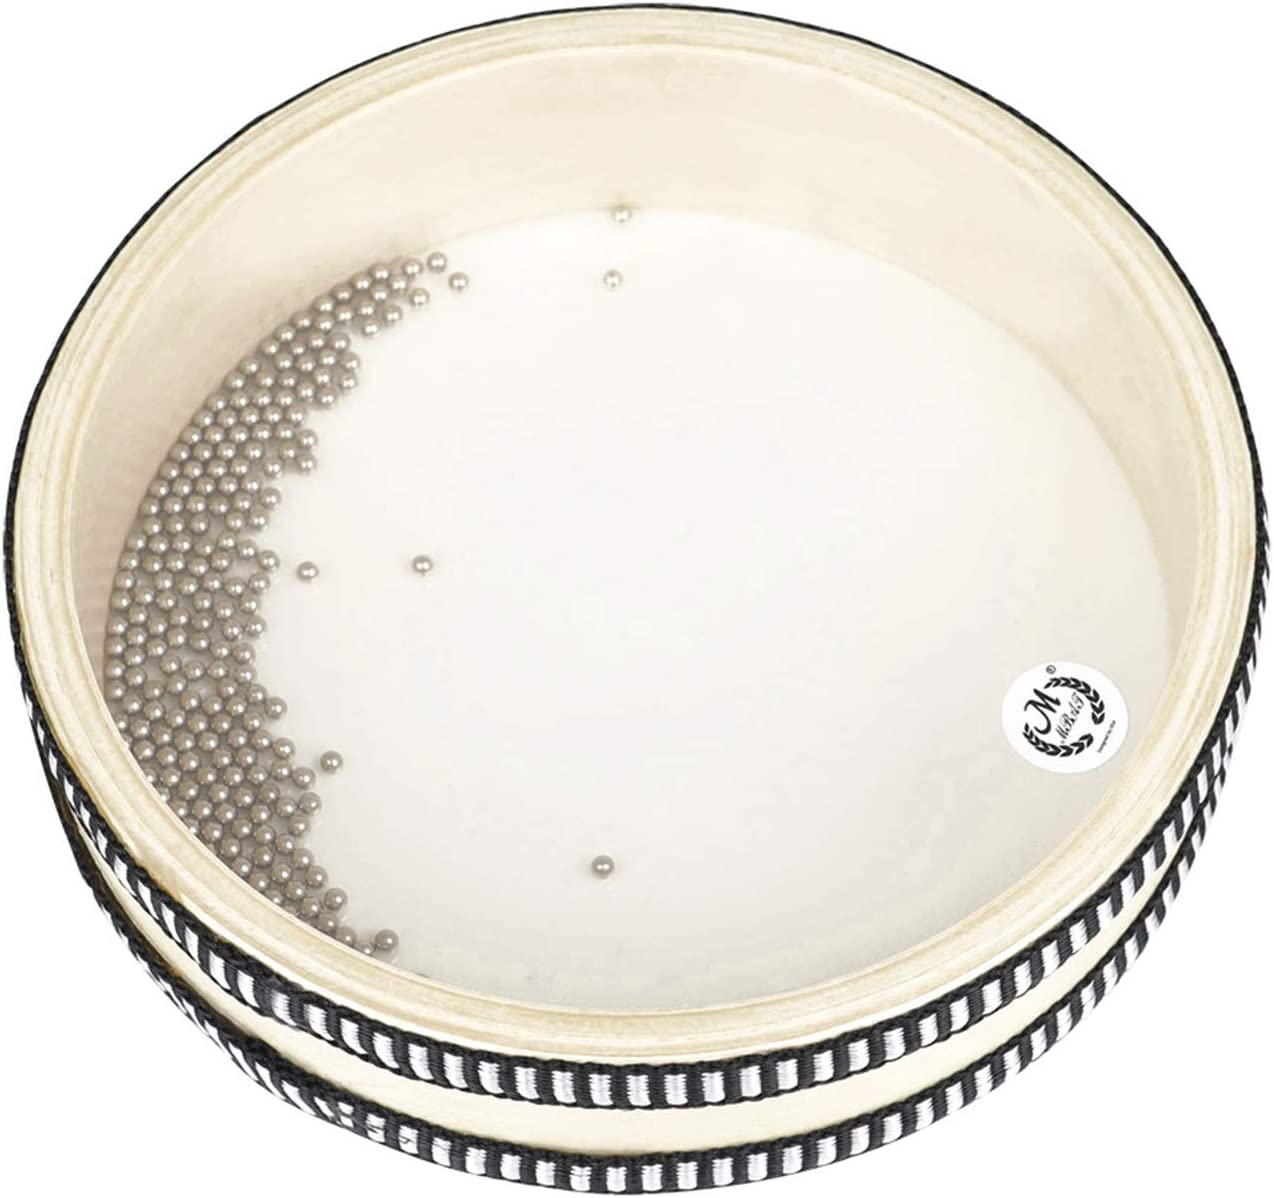 6-inch Transparent Wave Drum Natural Color Limited Special Price Ocean Educ OFFicial mail order Early